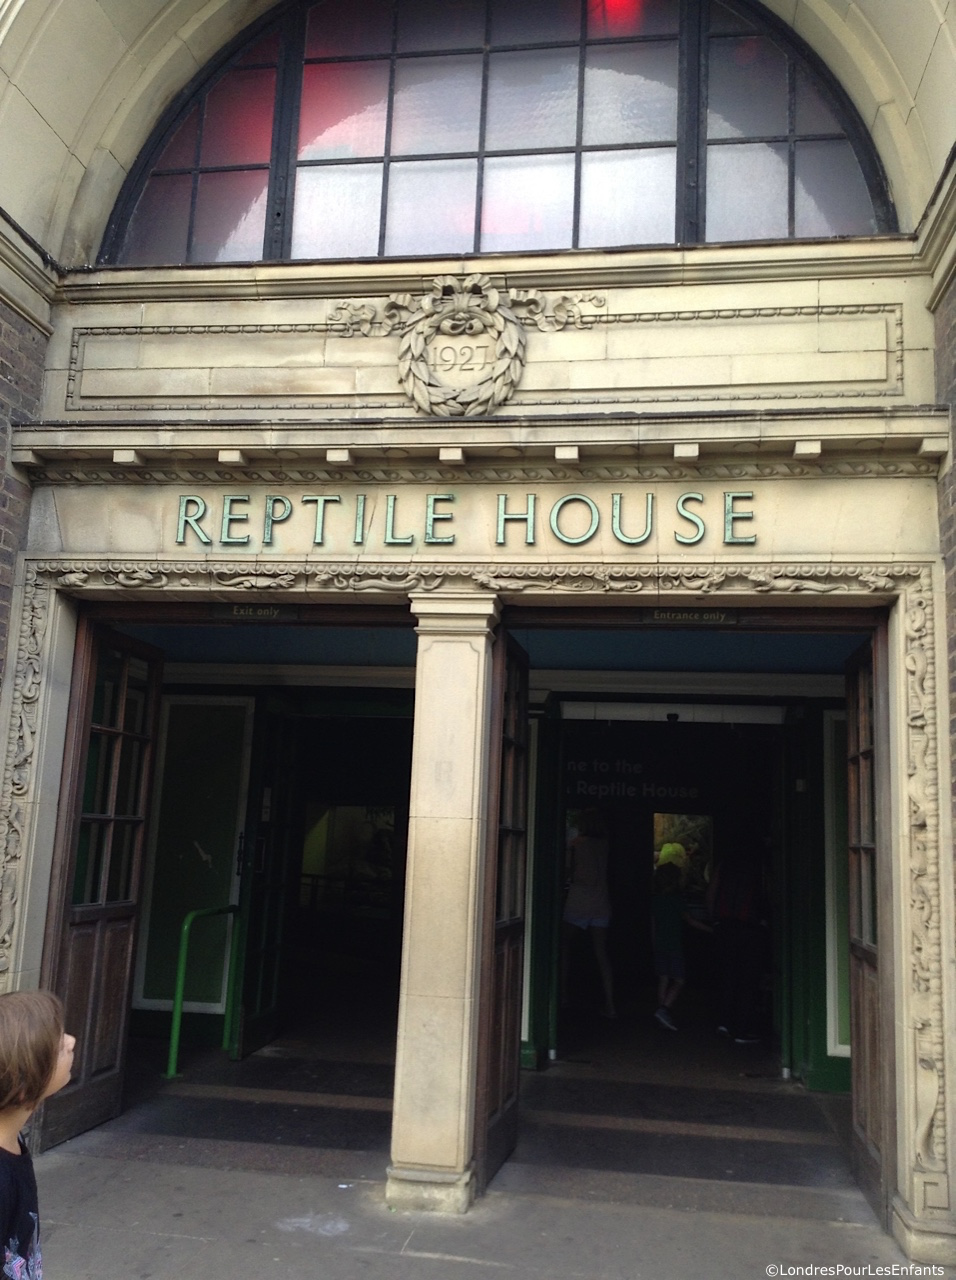 The Reptile House, London Zoo